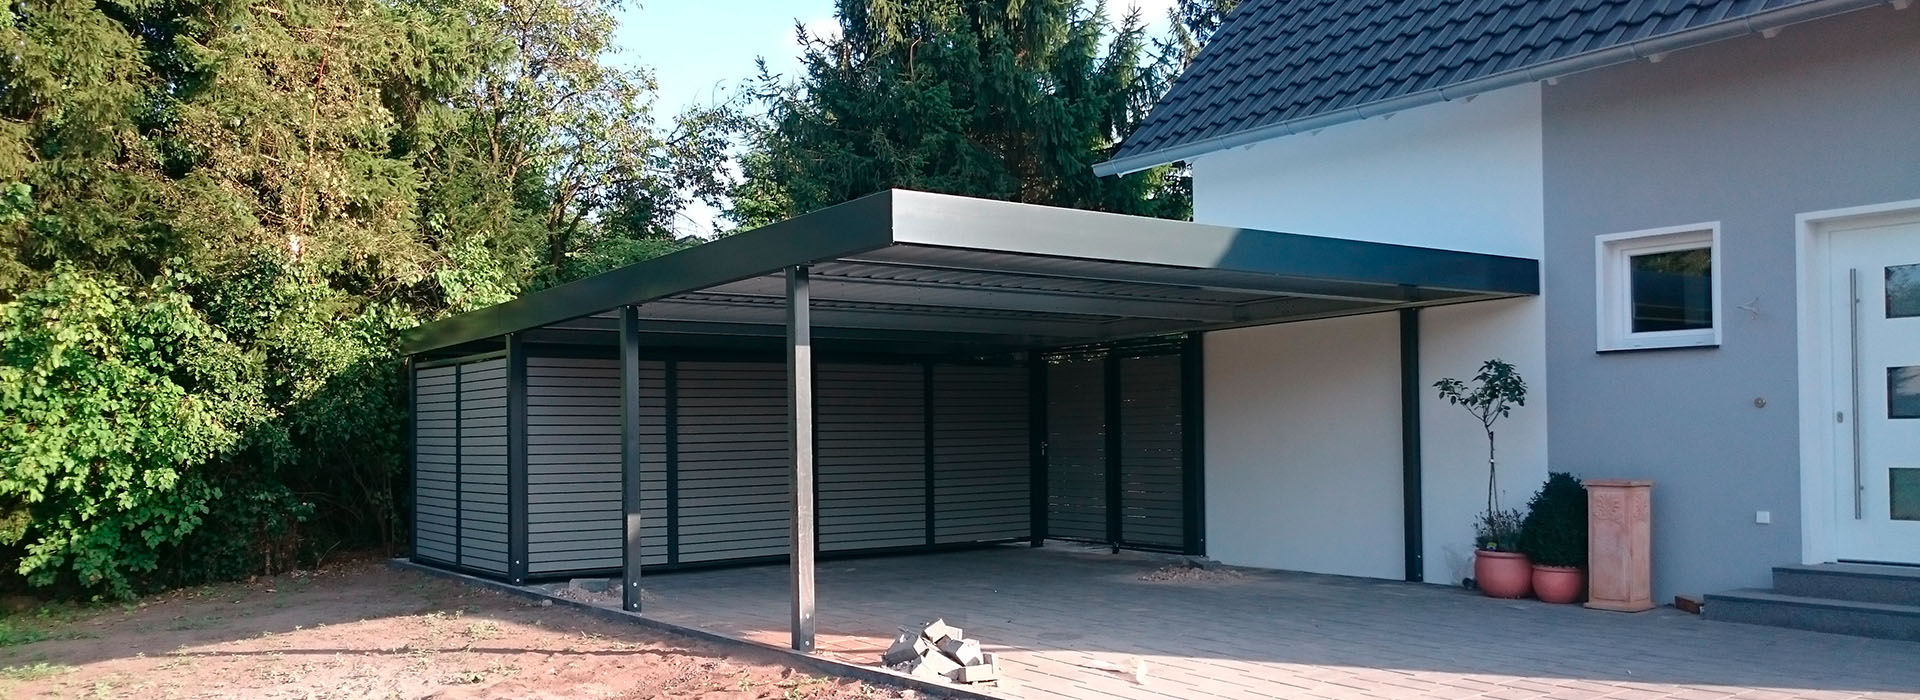 beton carport preis beton carports von beton kemmler beton carports von beton kemmler. Black Bedroom Furniture Sets. Home Design Ideas